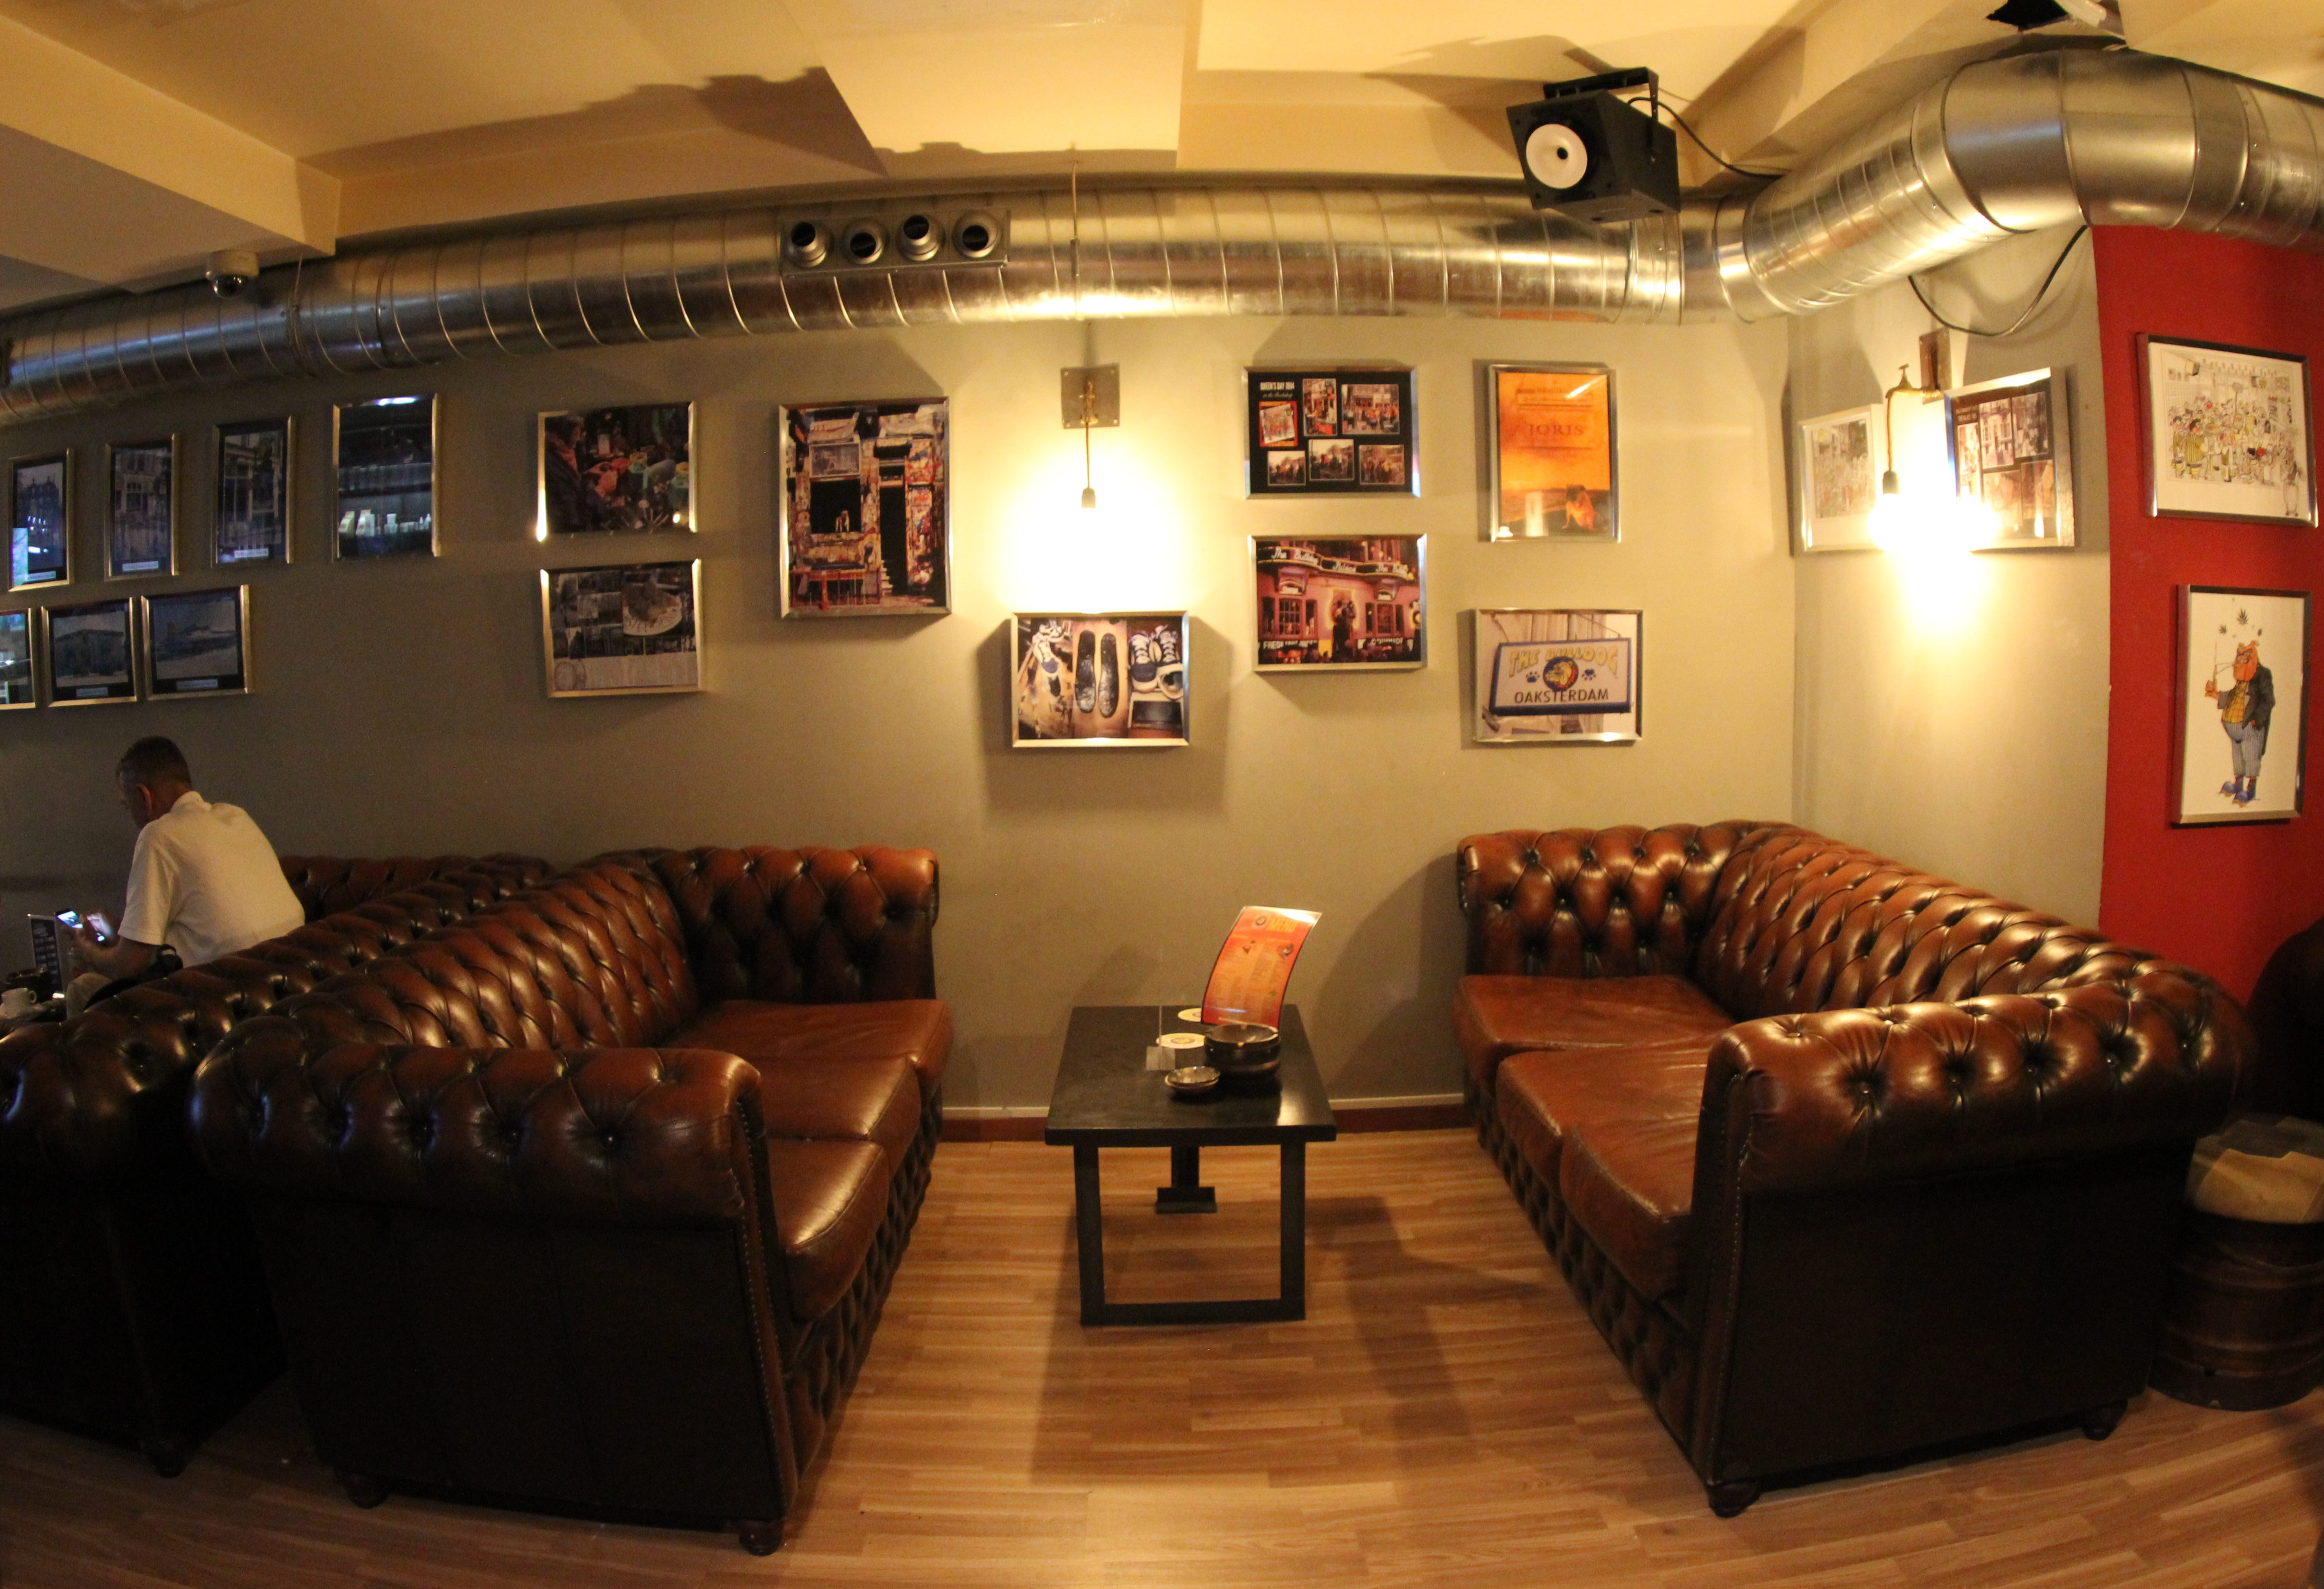 marihuana shop sofas and table with walls decorated with pictures